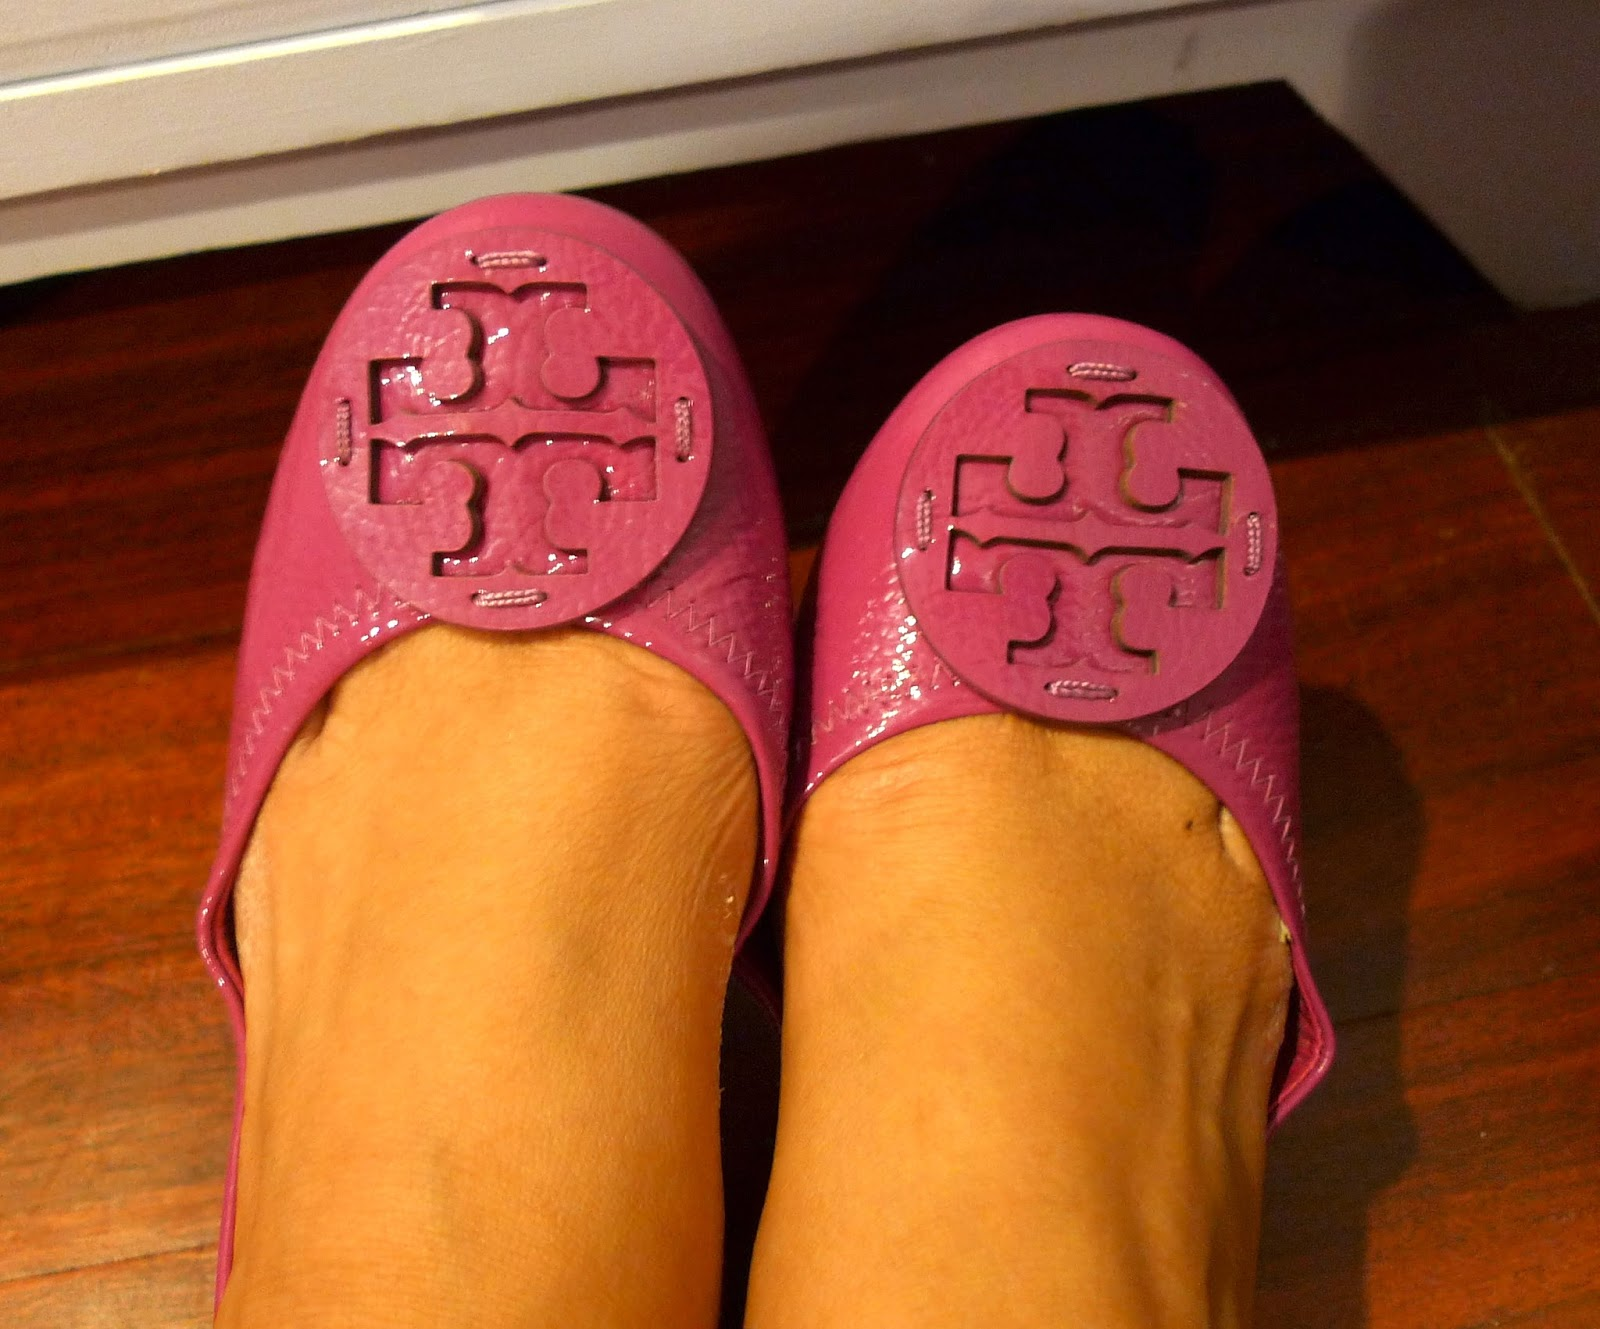 Just like my first- ever Tory Burch Reva pair, this one needs some breaking  in. :D Just like the old times! :)